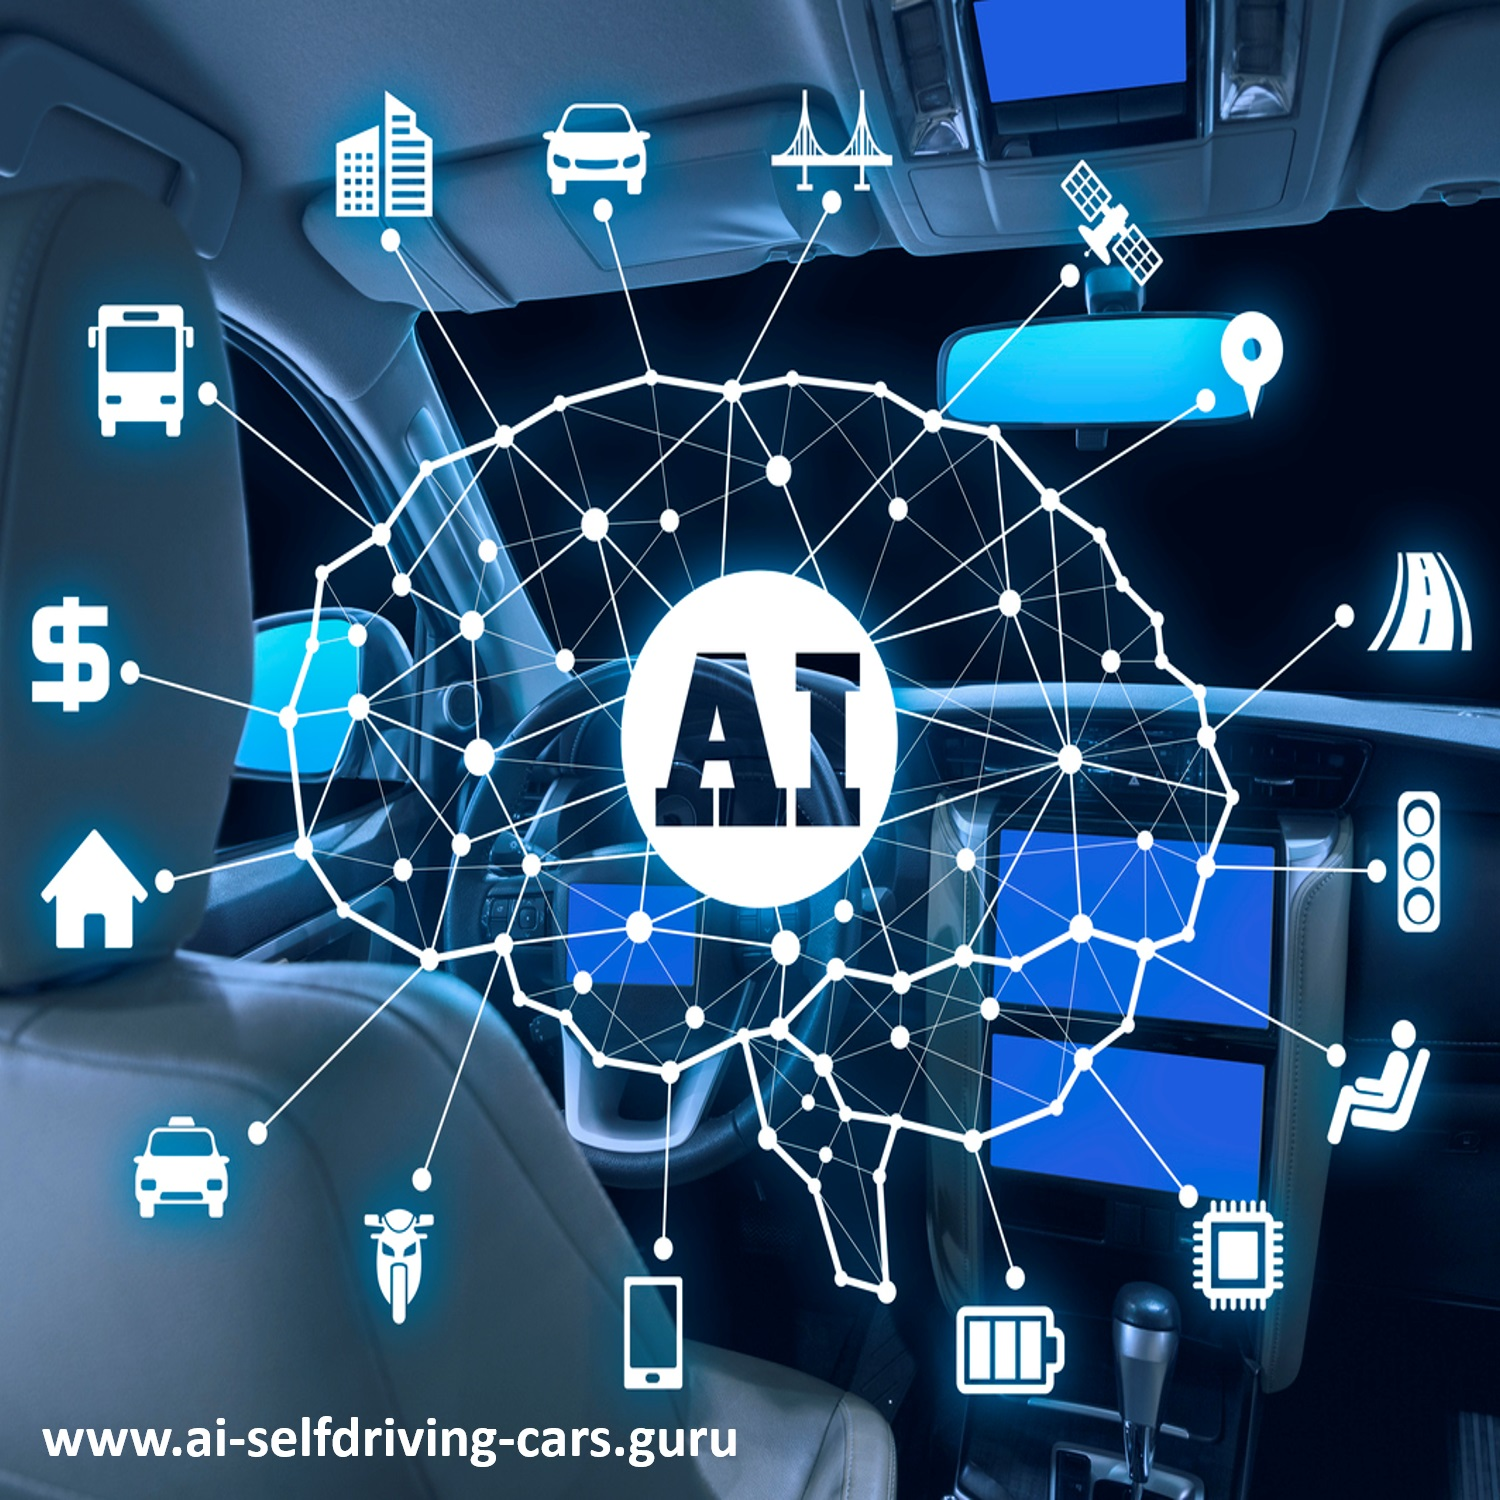 Self-Driving Cars: Podcast Series by Dr. Lance Eliot show art